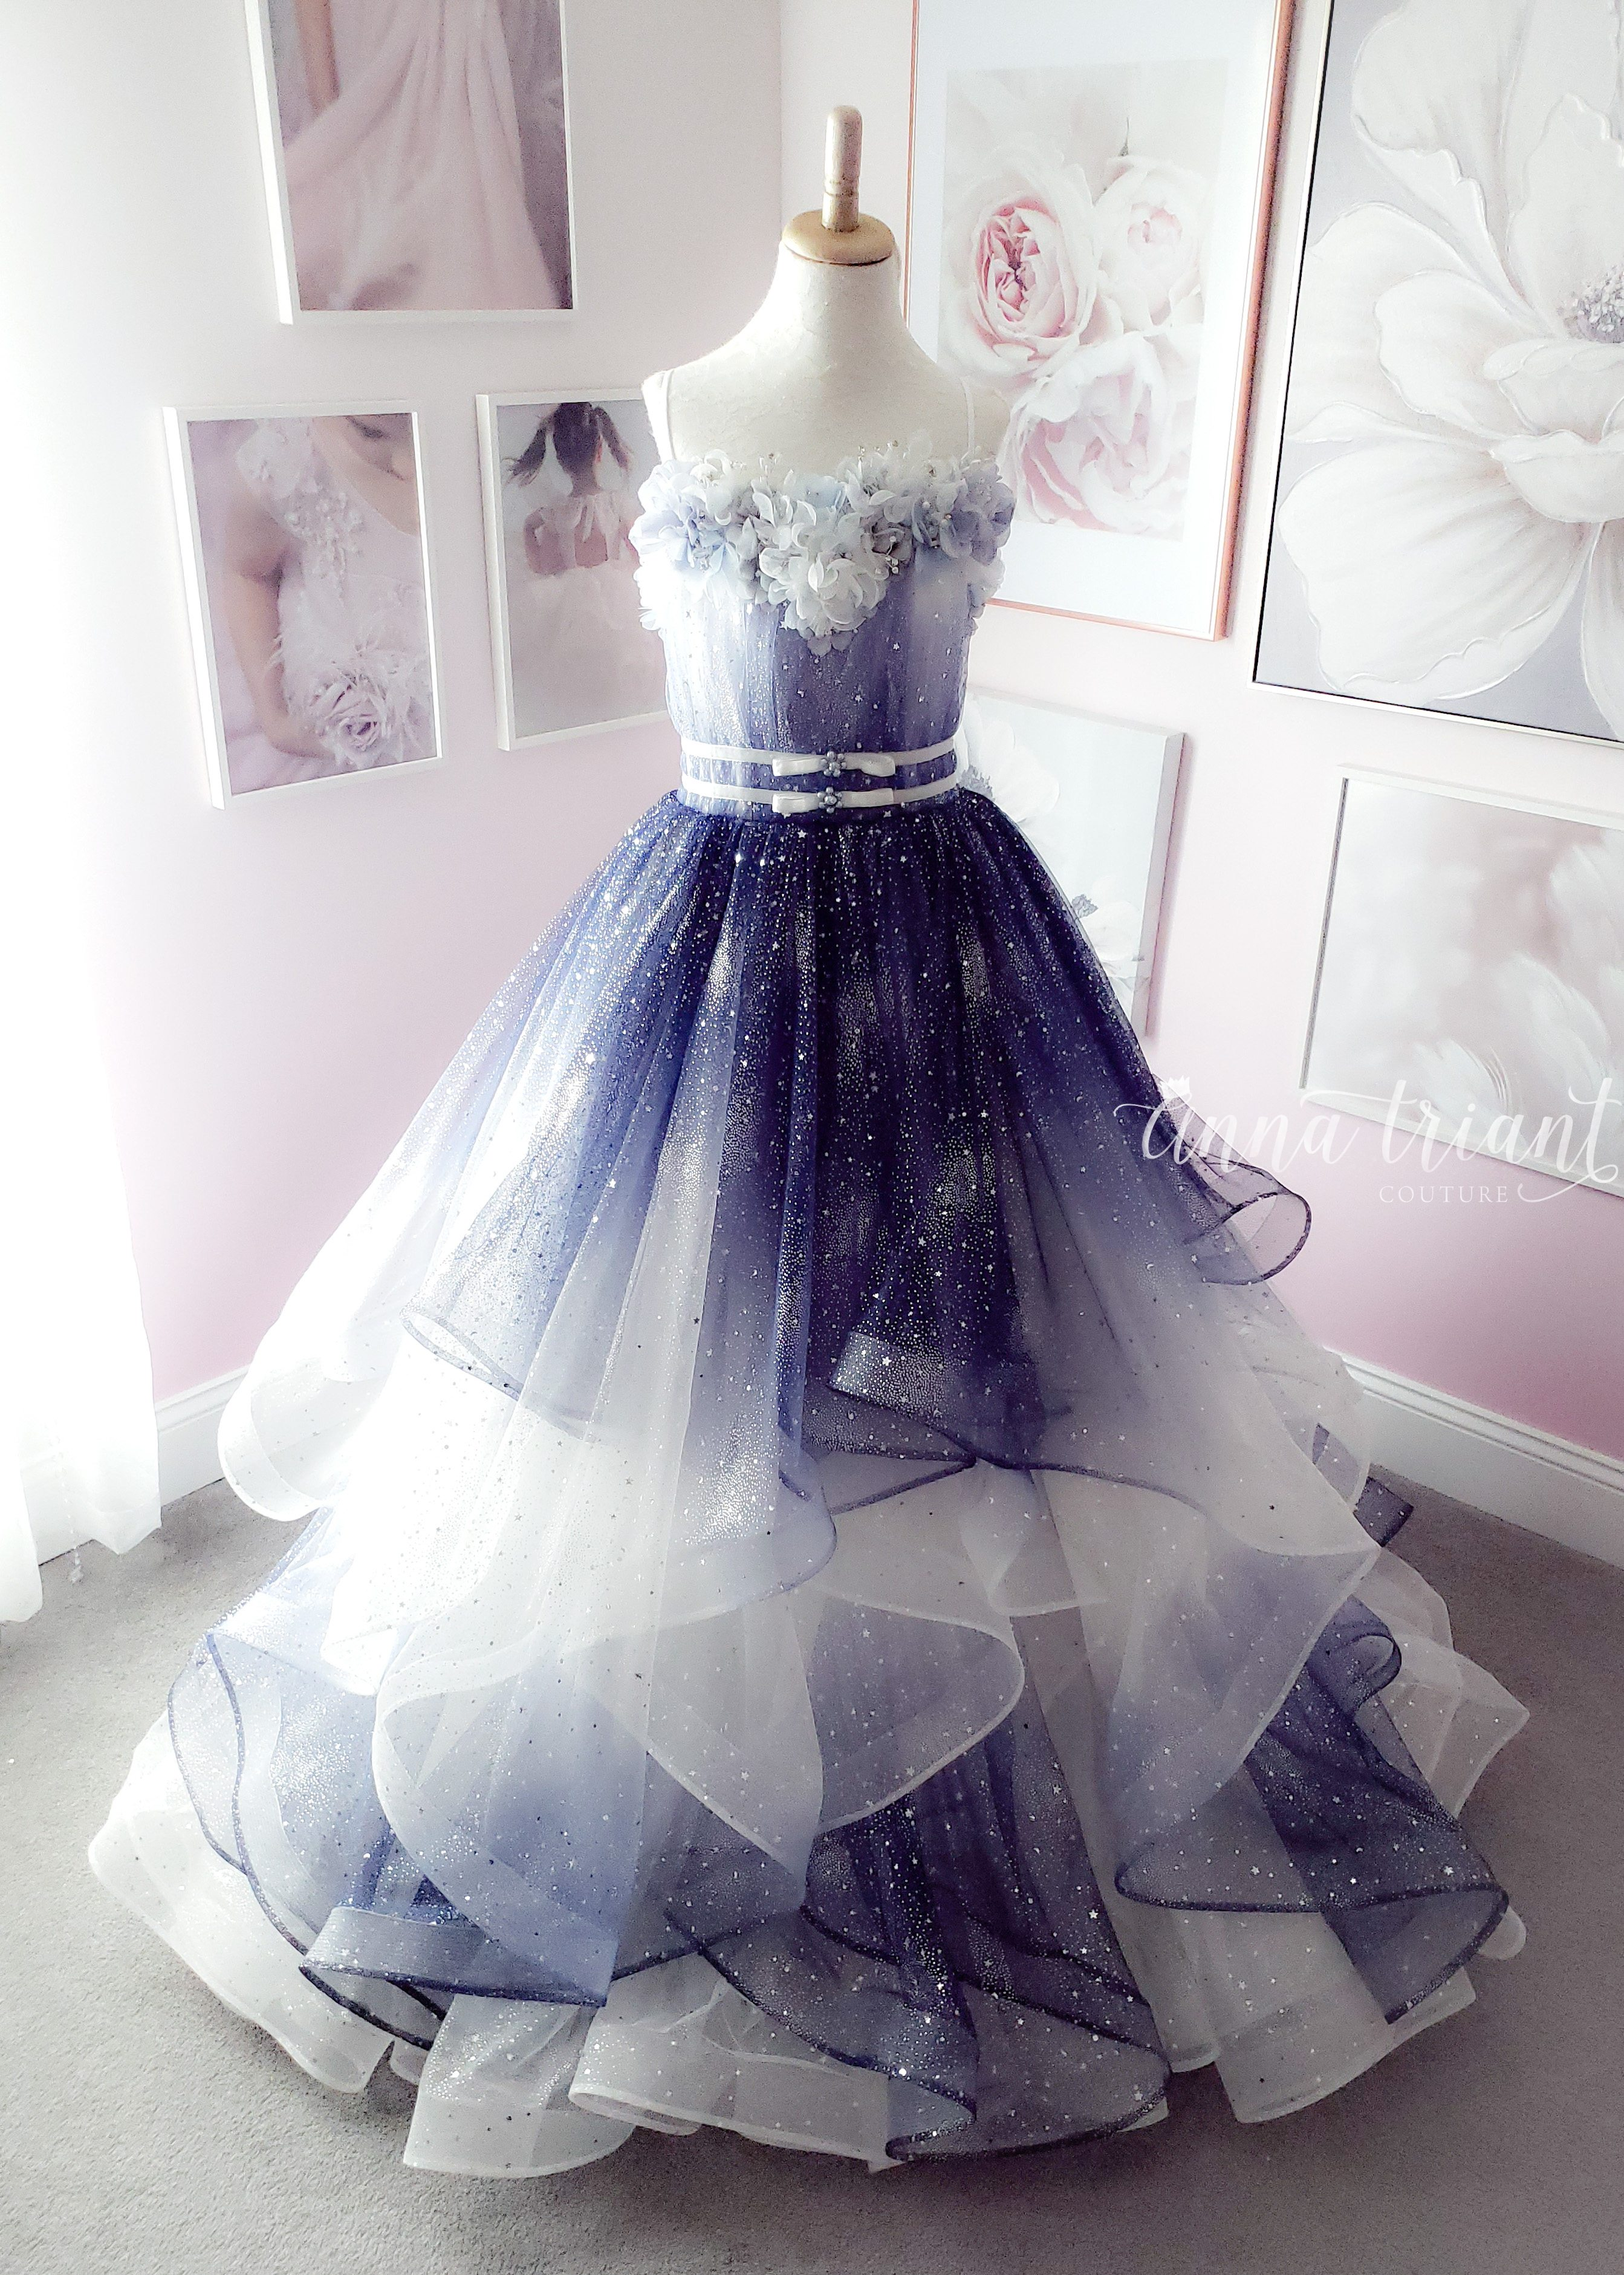 Ombre Dreams Gown